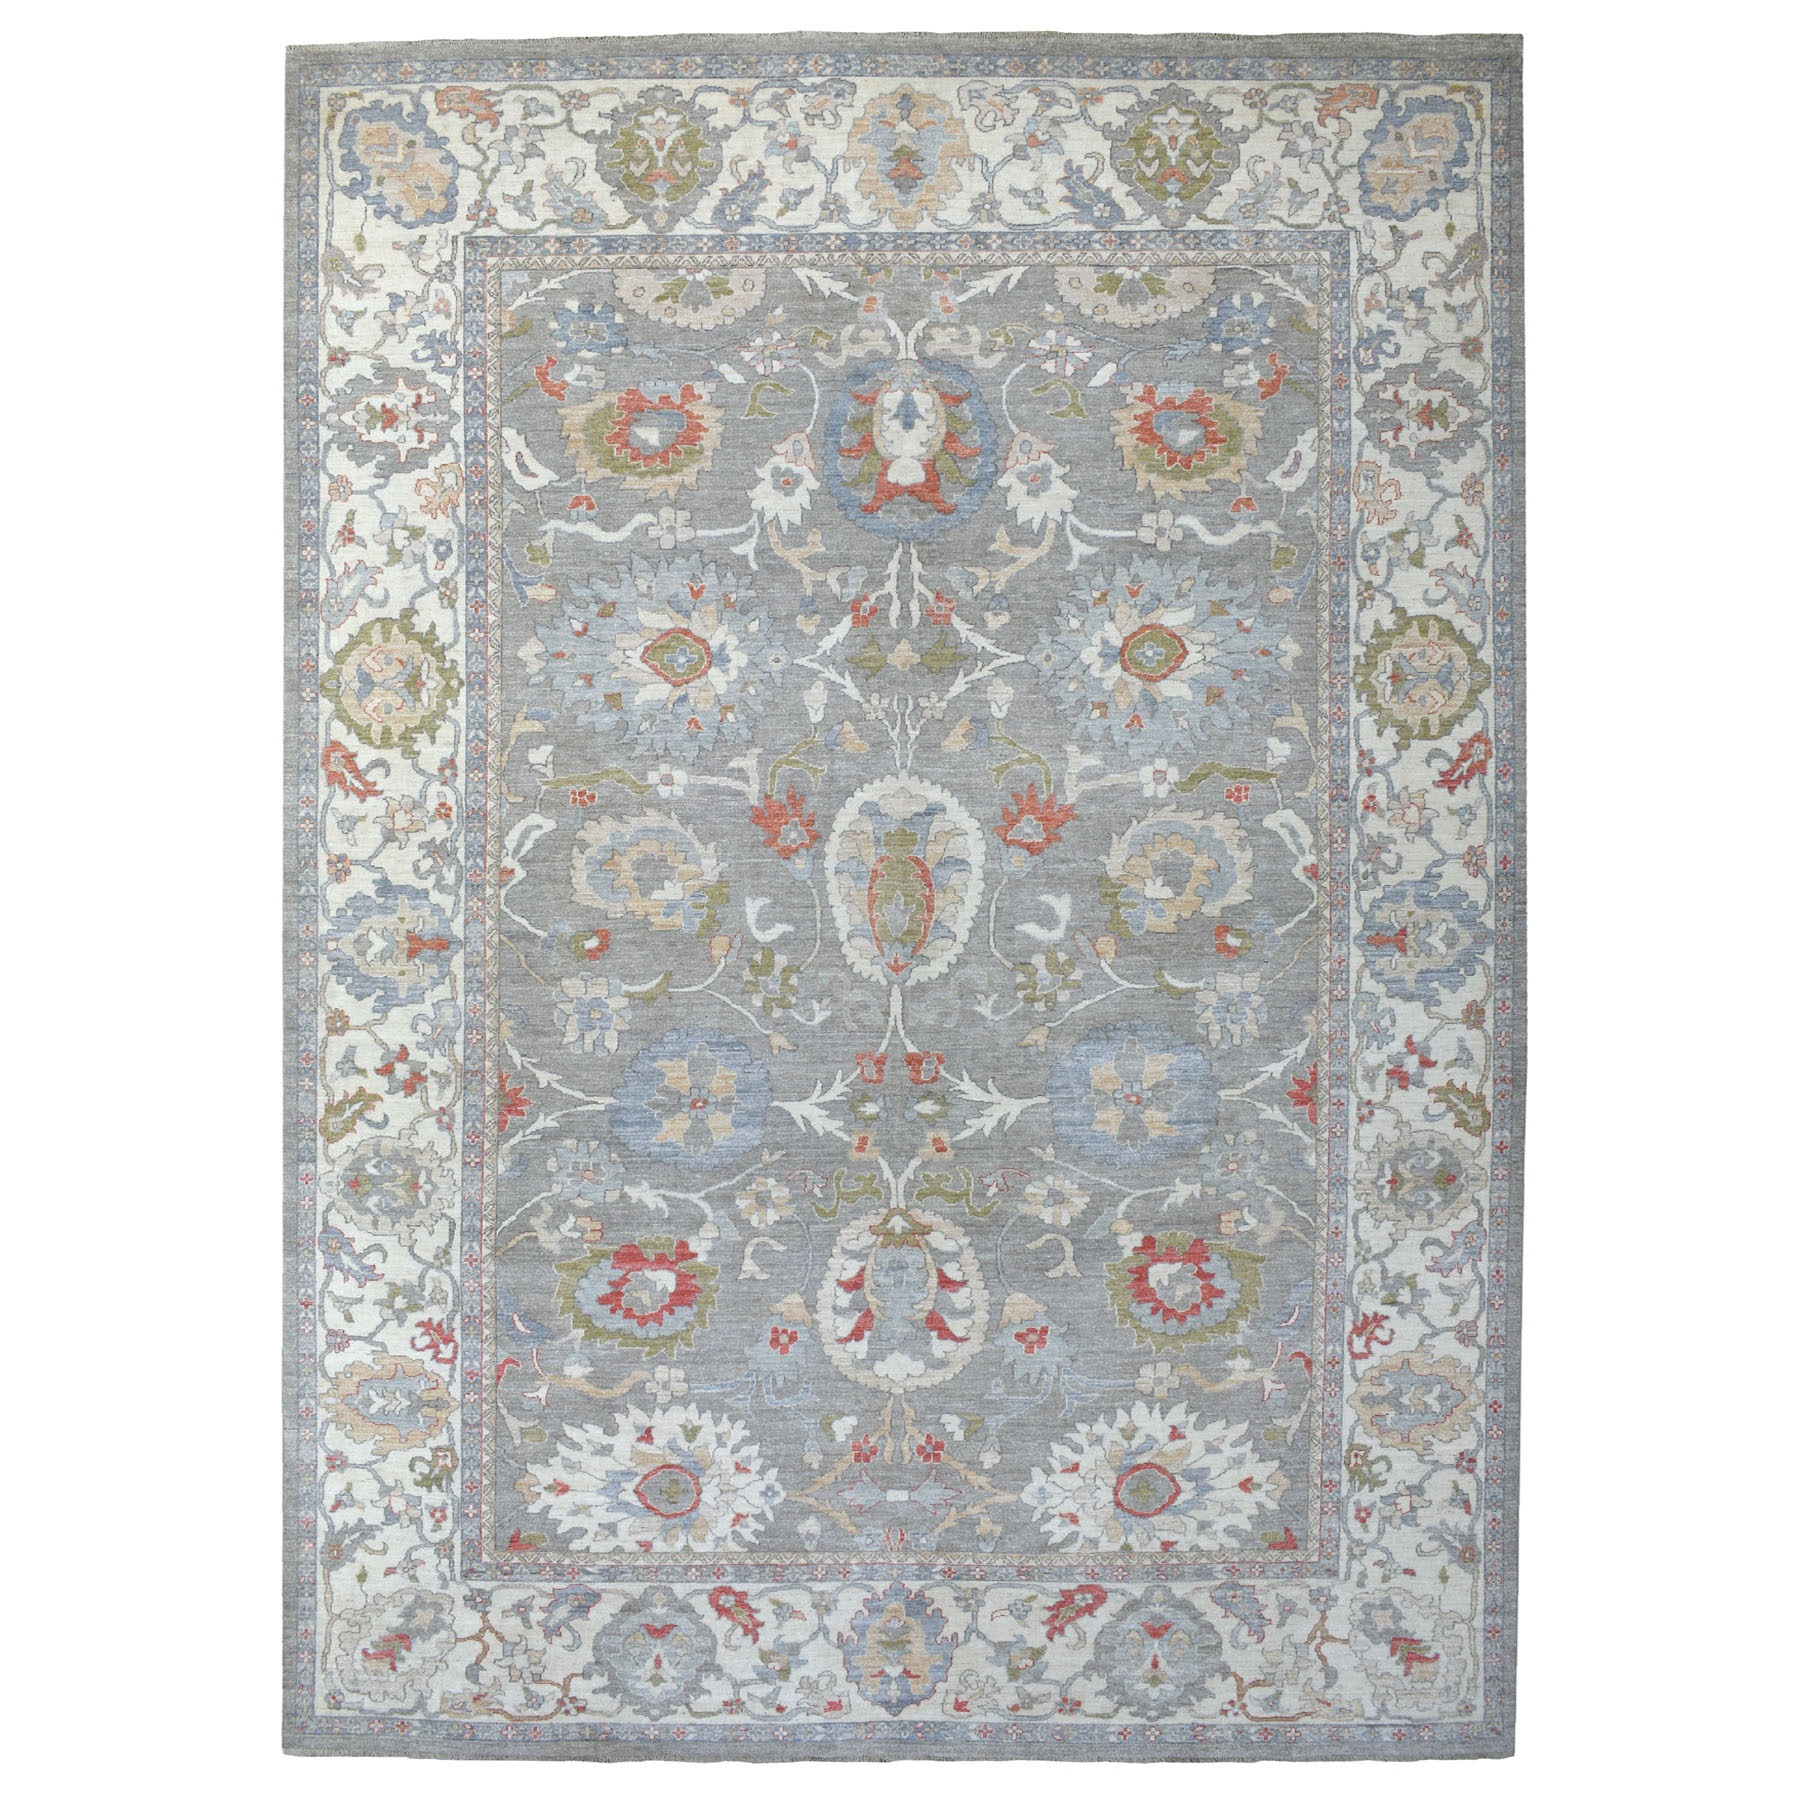 "9'10""x14' Gray Afghan Peshawar with Mahal Design Handspun Wool Hand Knotted Oriental Rug"